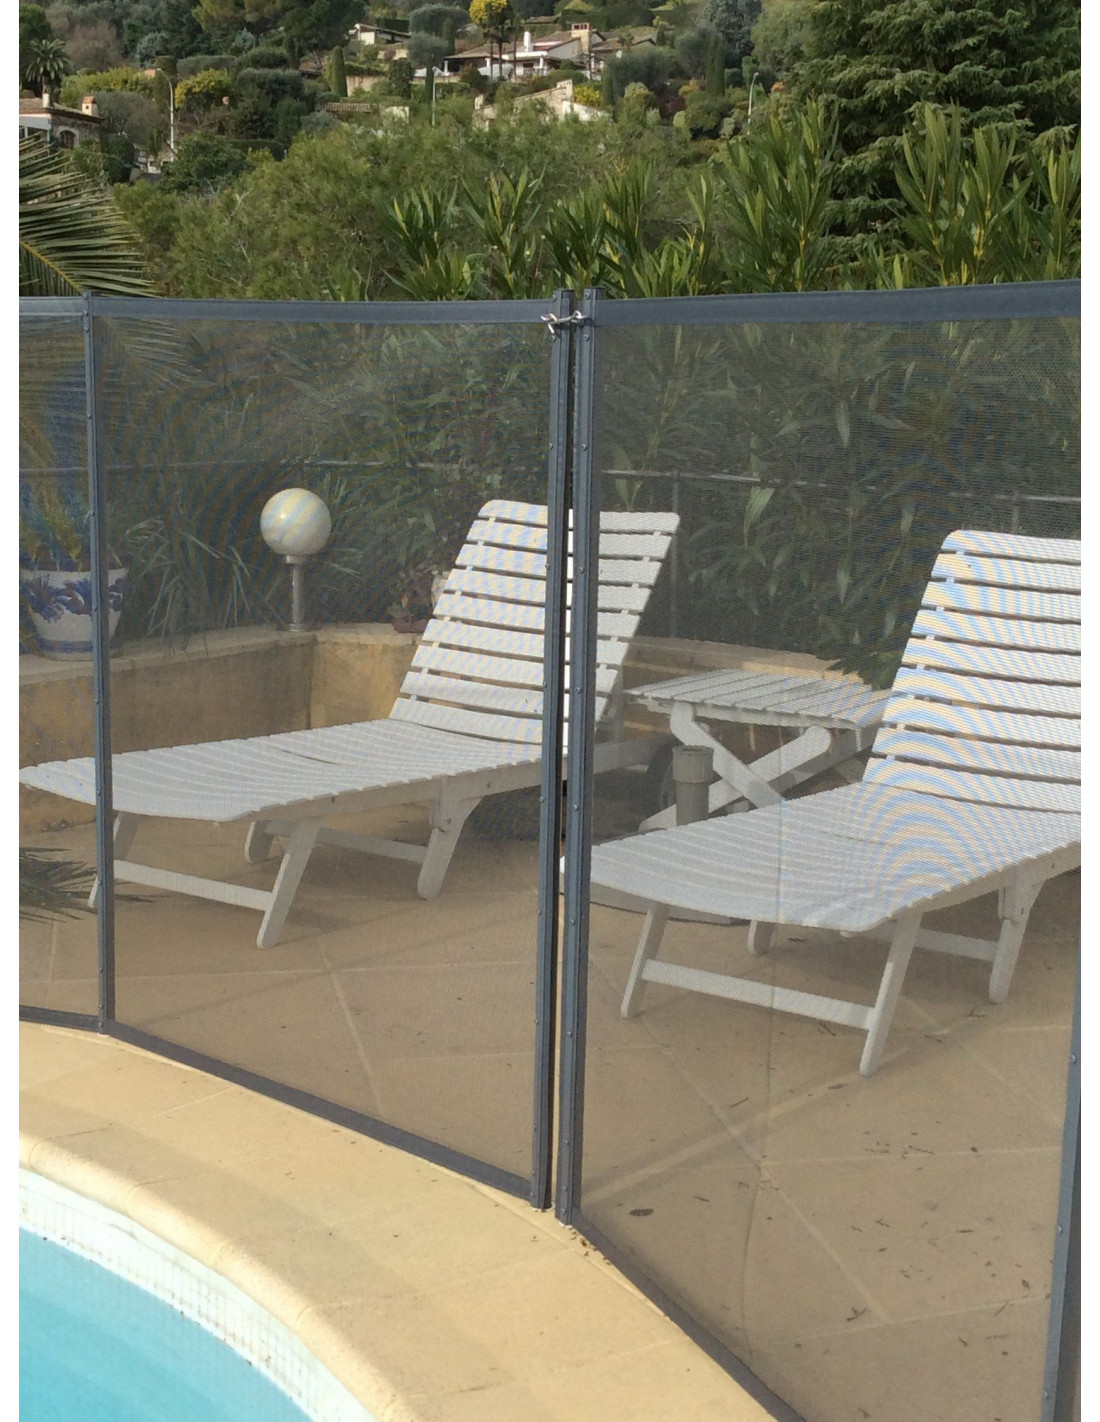 Barri re protection piscine beethoven grise avec piquets gris for Barrieres protection piscine